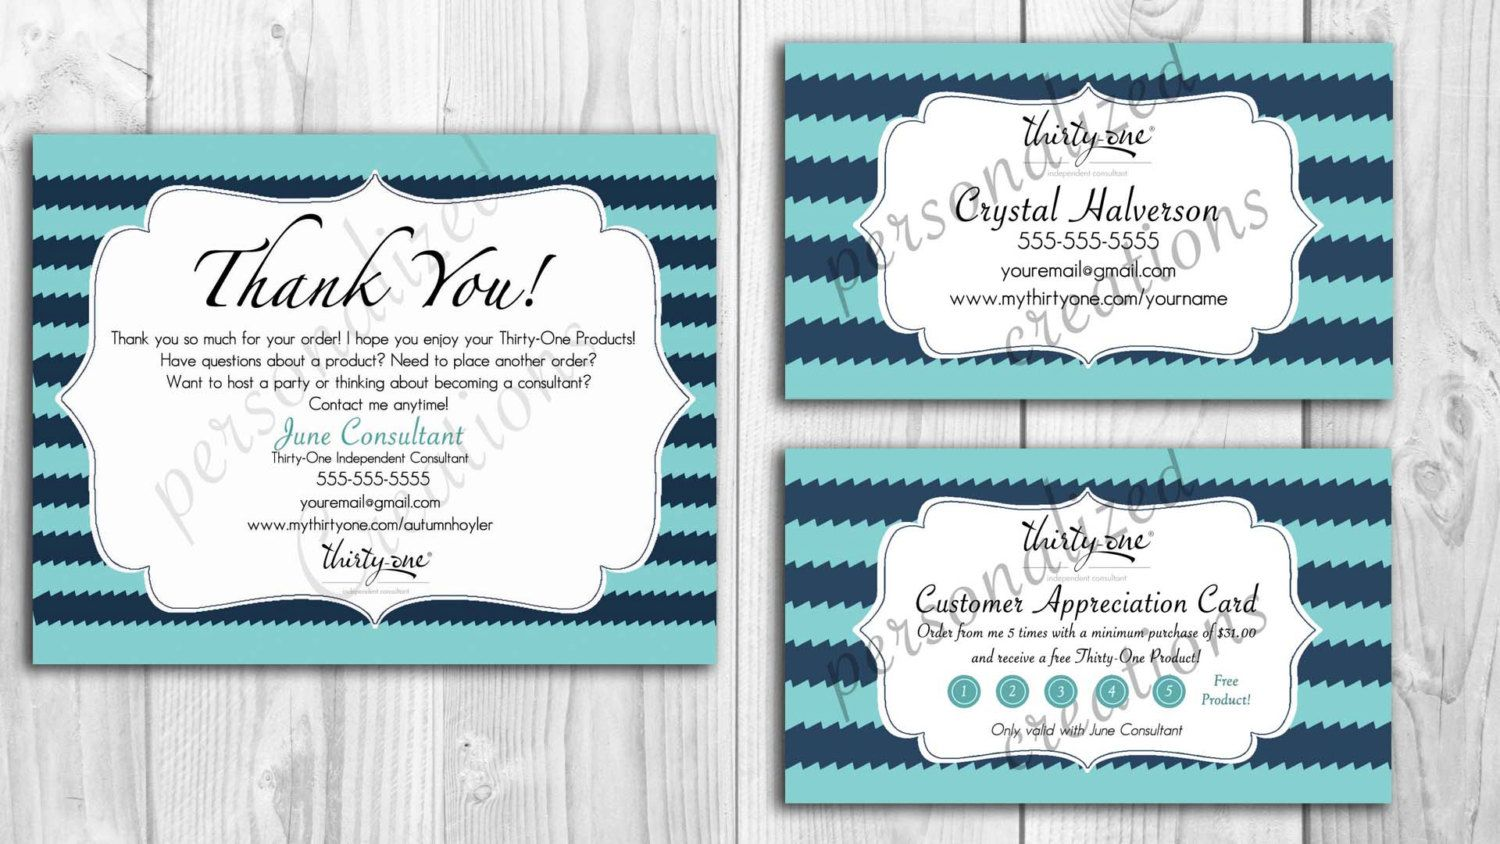 Personalized business cards and customer cards made for thirty one personalized business cards and customer cards made for thirty one gifts deep sea wave magicingreecefo Image collections